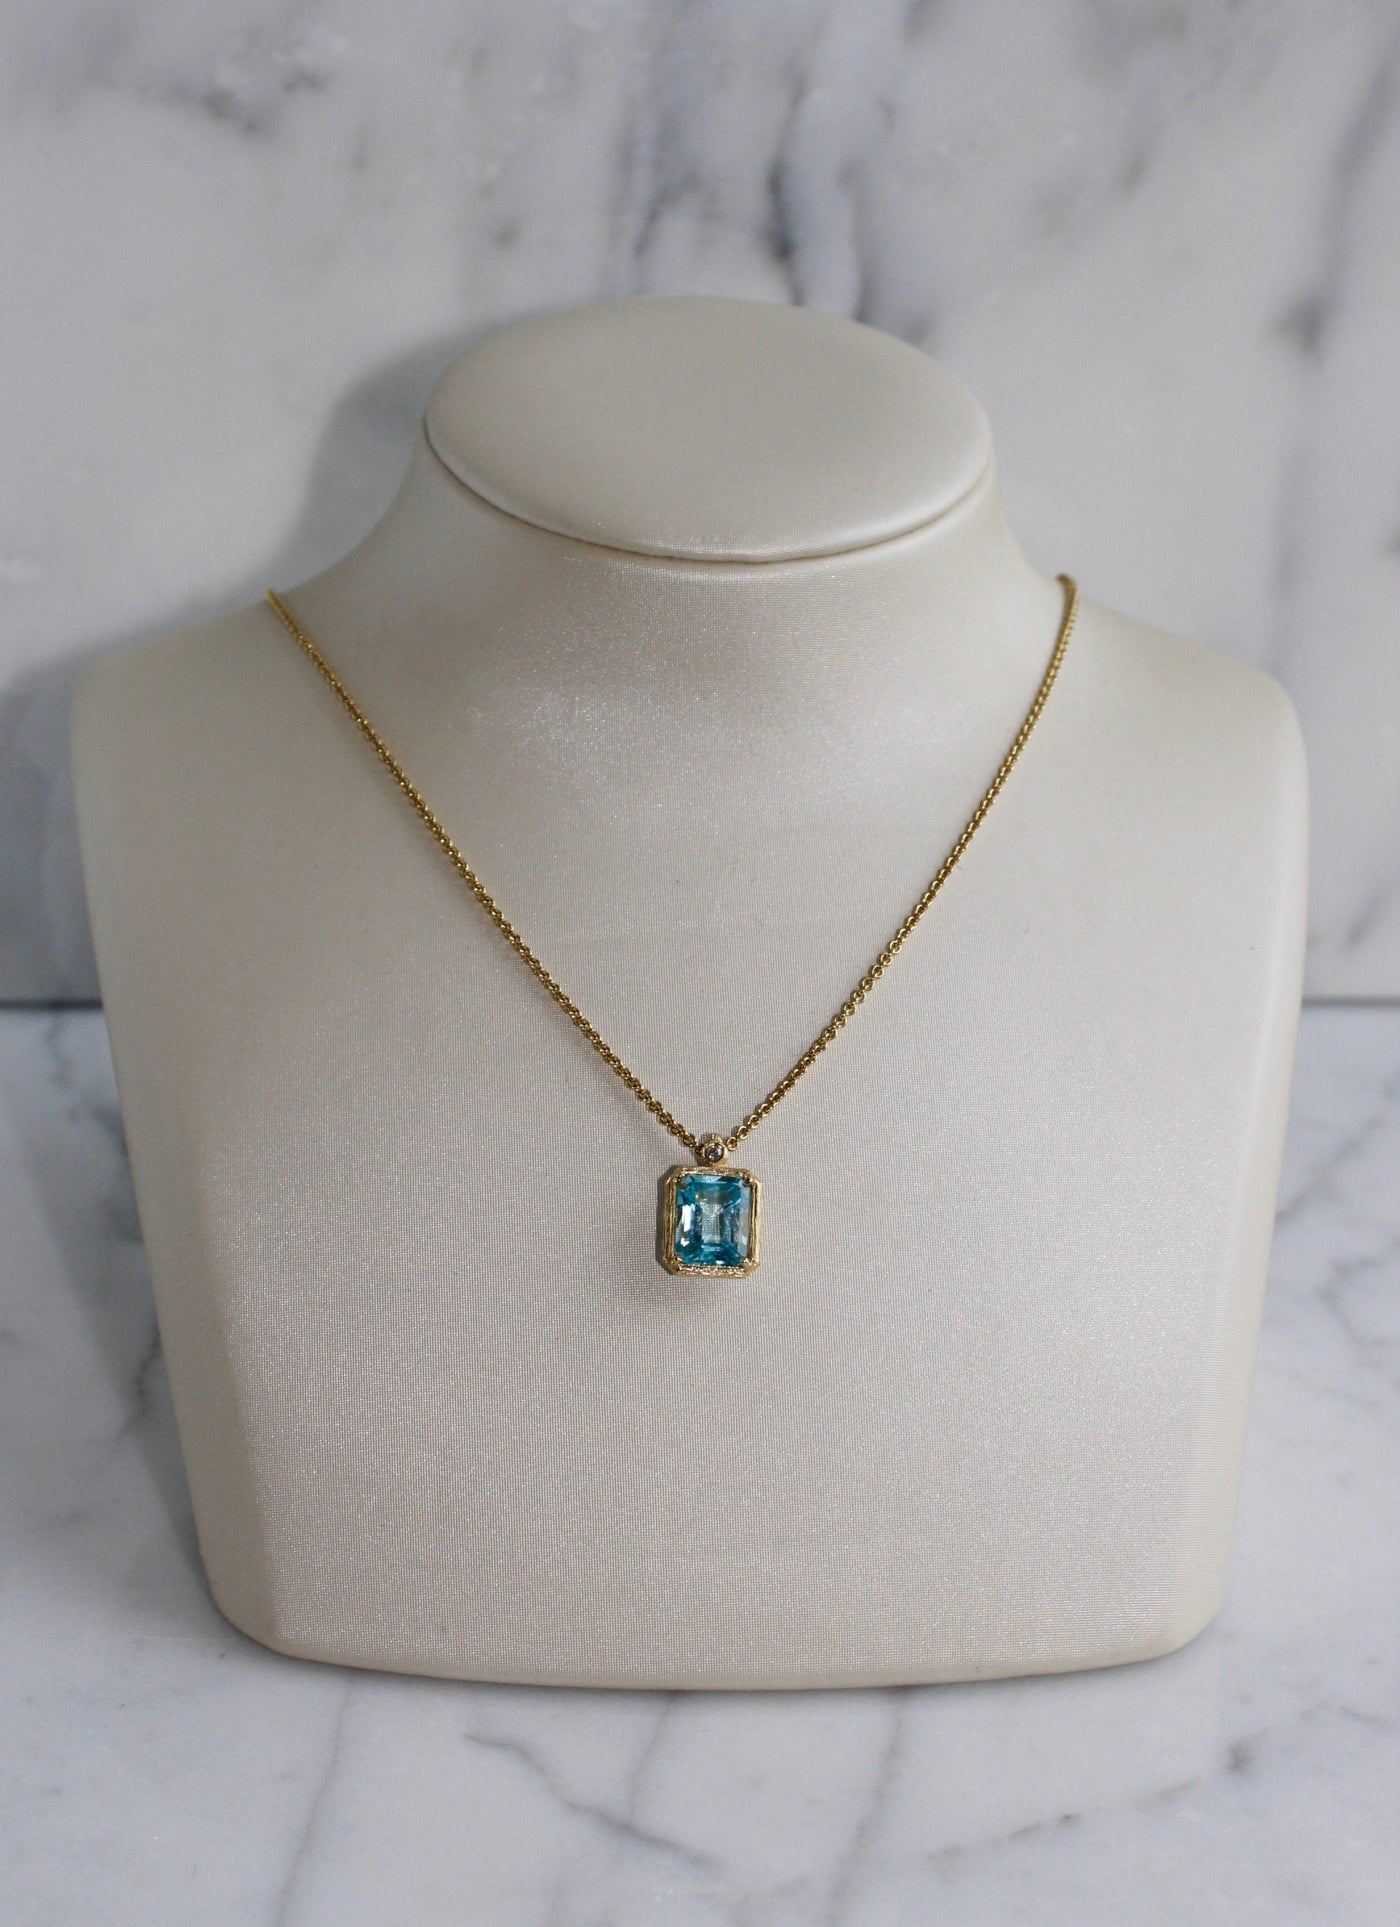 Blue Topaz Necklace with Diamond Detail